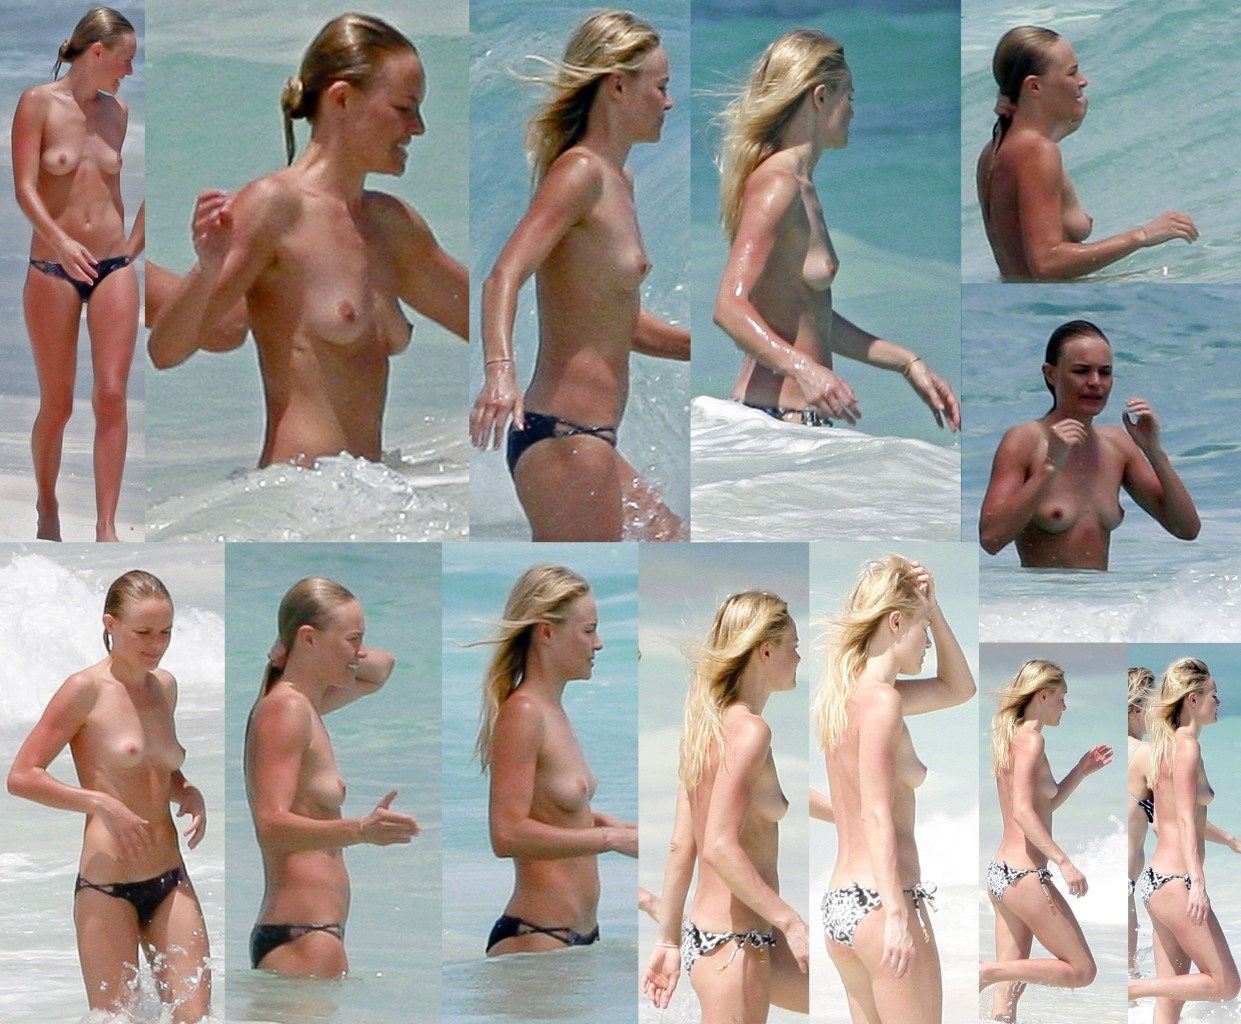 Kate bosworth nude beach